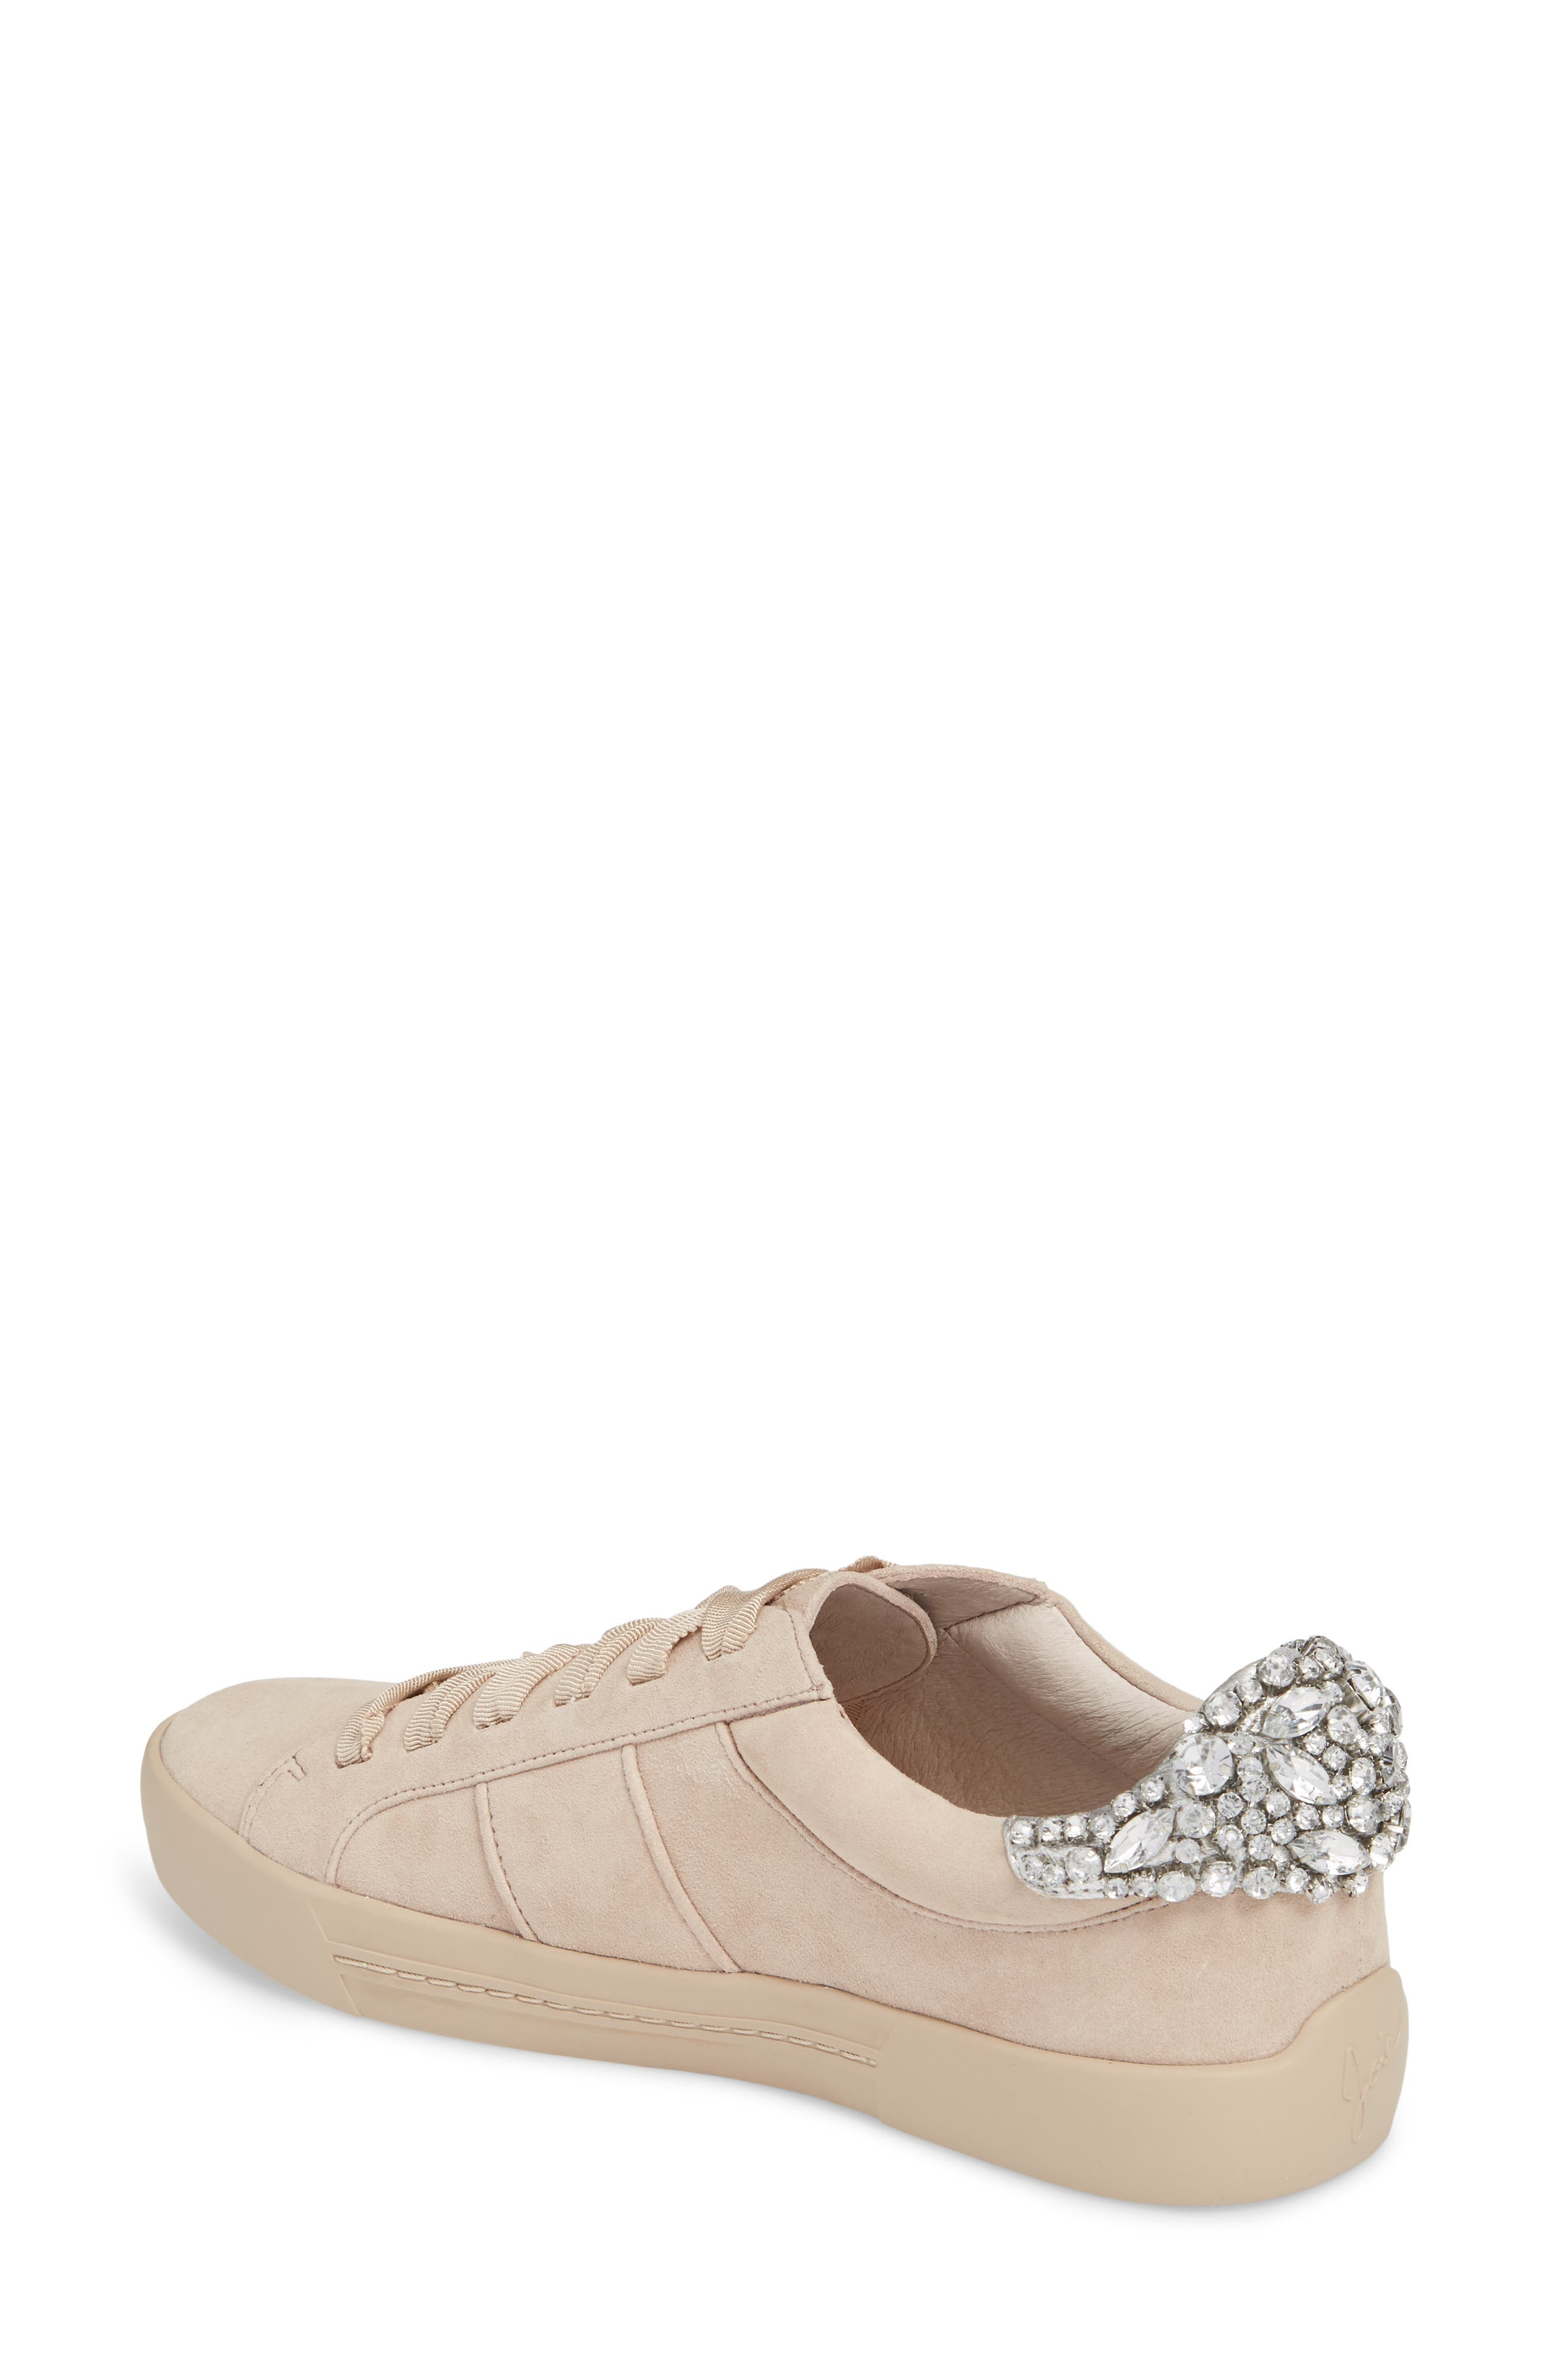 Darena Crystal Embellished Sneaker,                             Alternate thumbnail 2, color,                             055